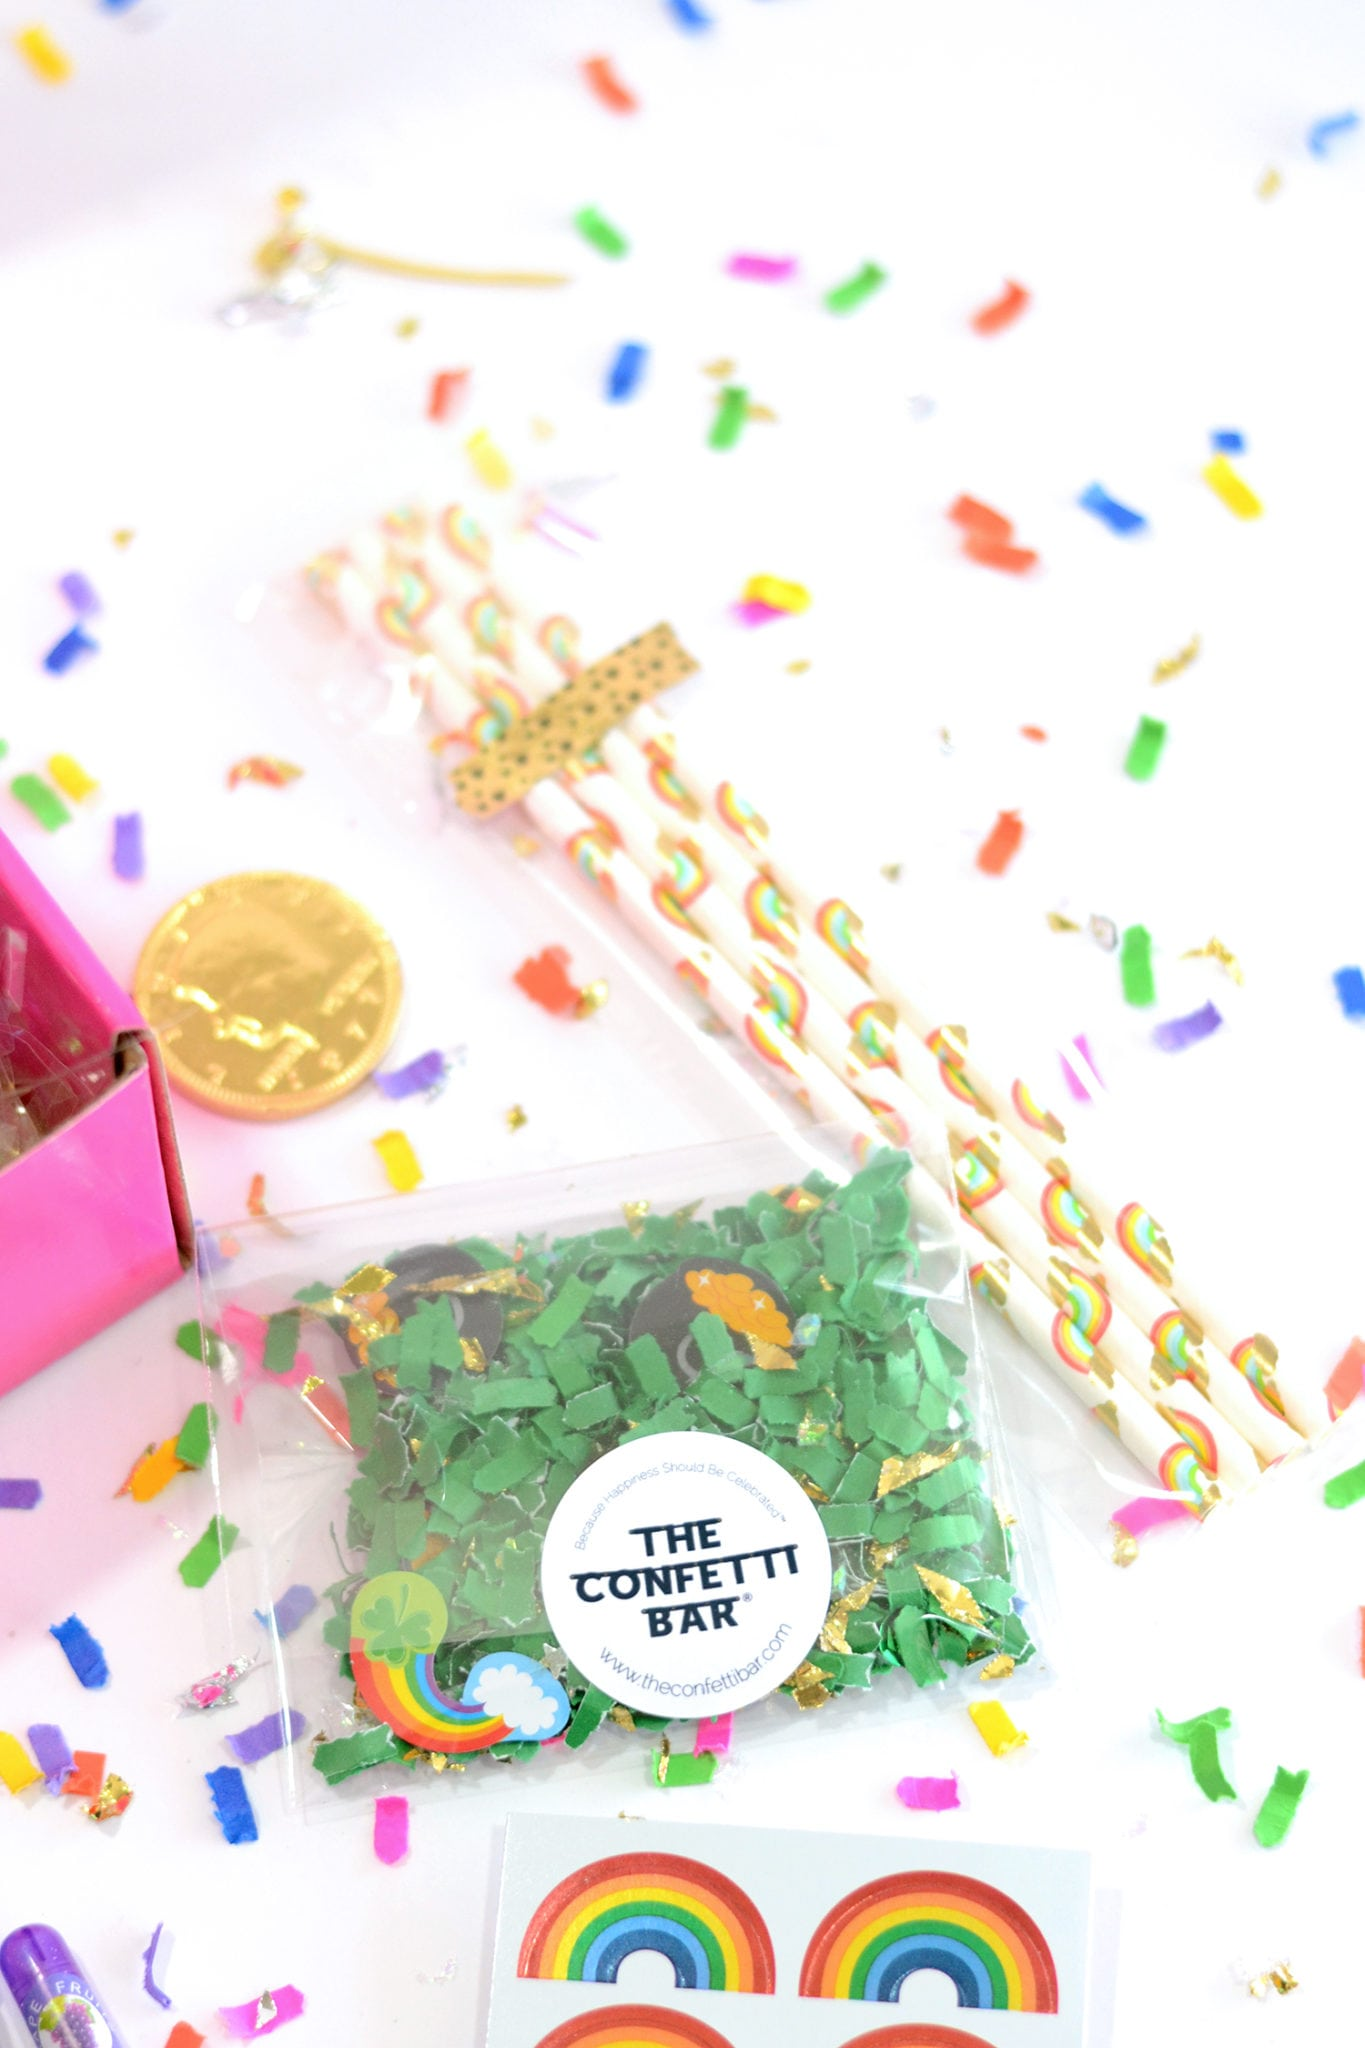 March 2017 Confetti of the Month Club Subscription Box